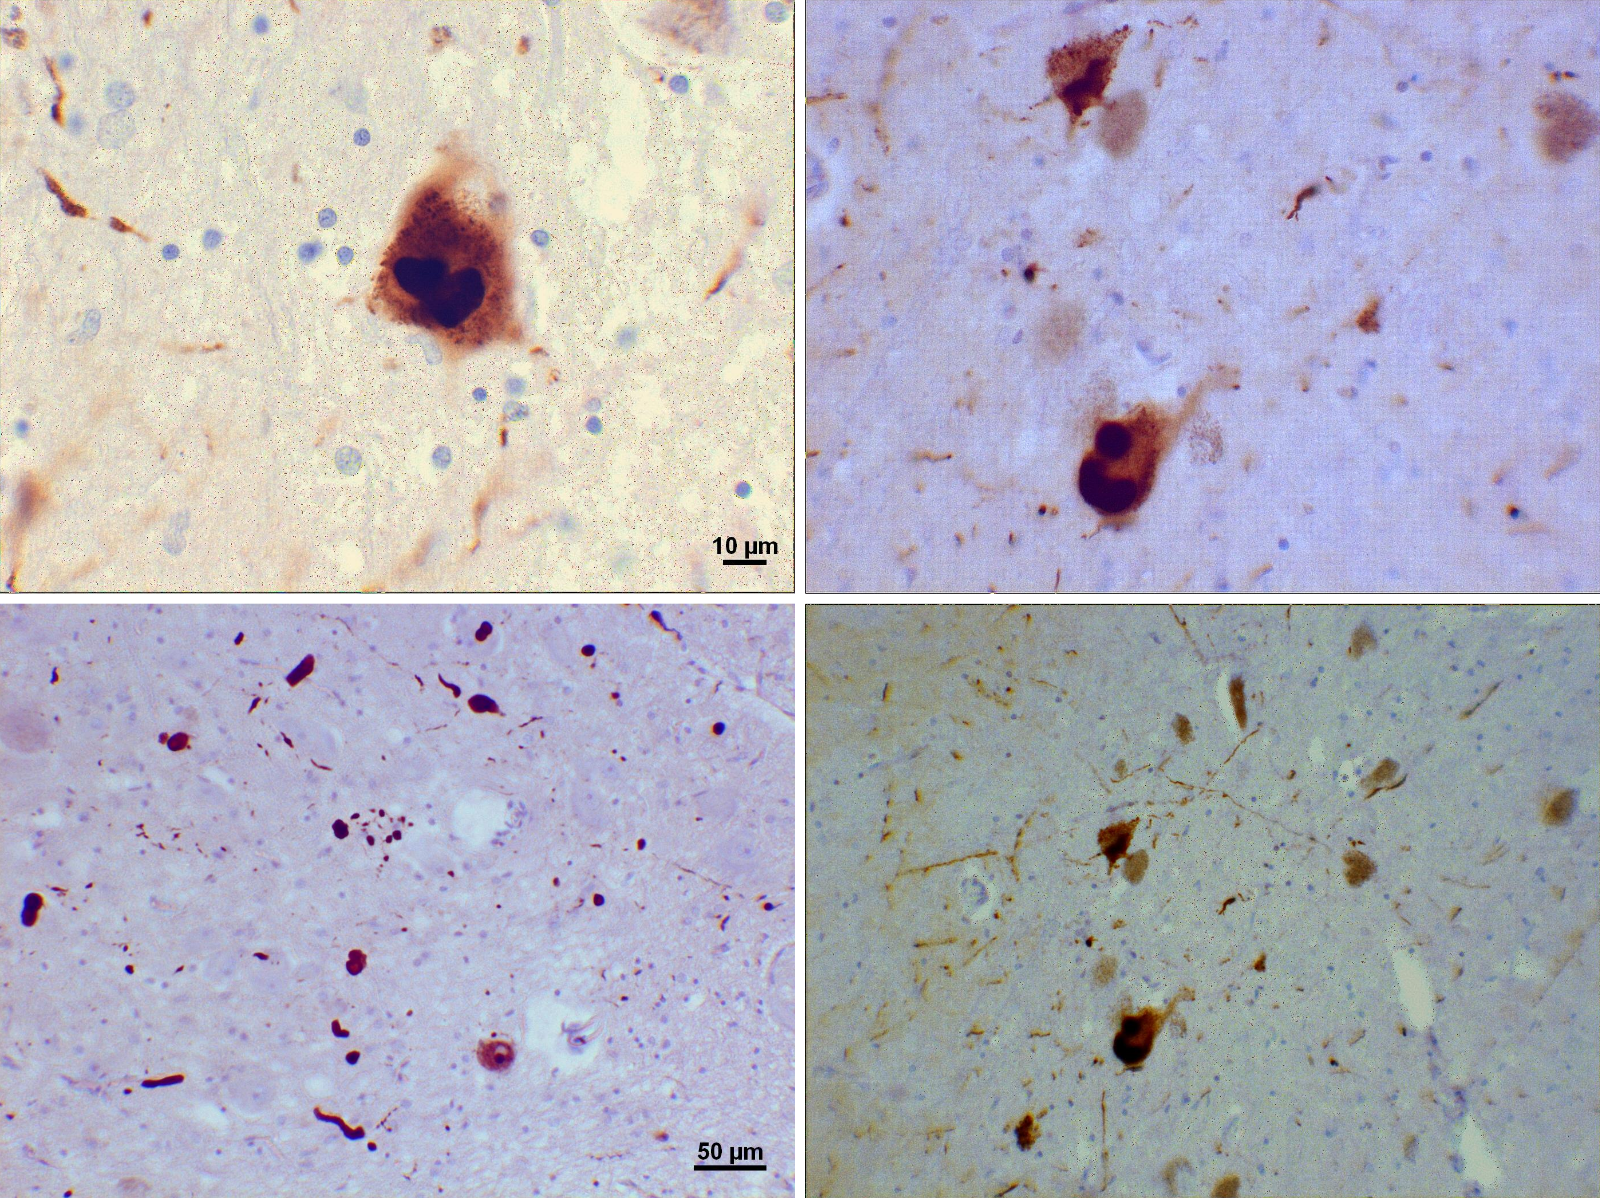 Difference Between Alzheimer's Disease and Dementia with Lewy Bodies